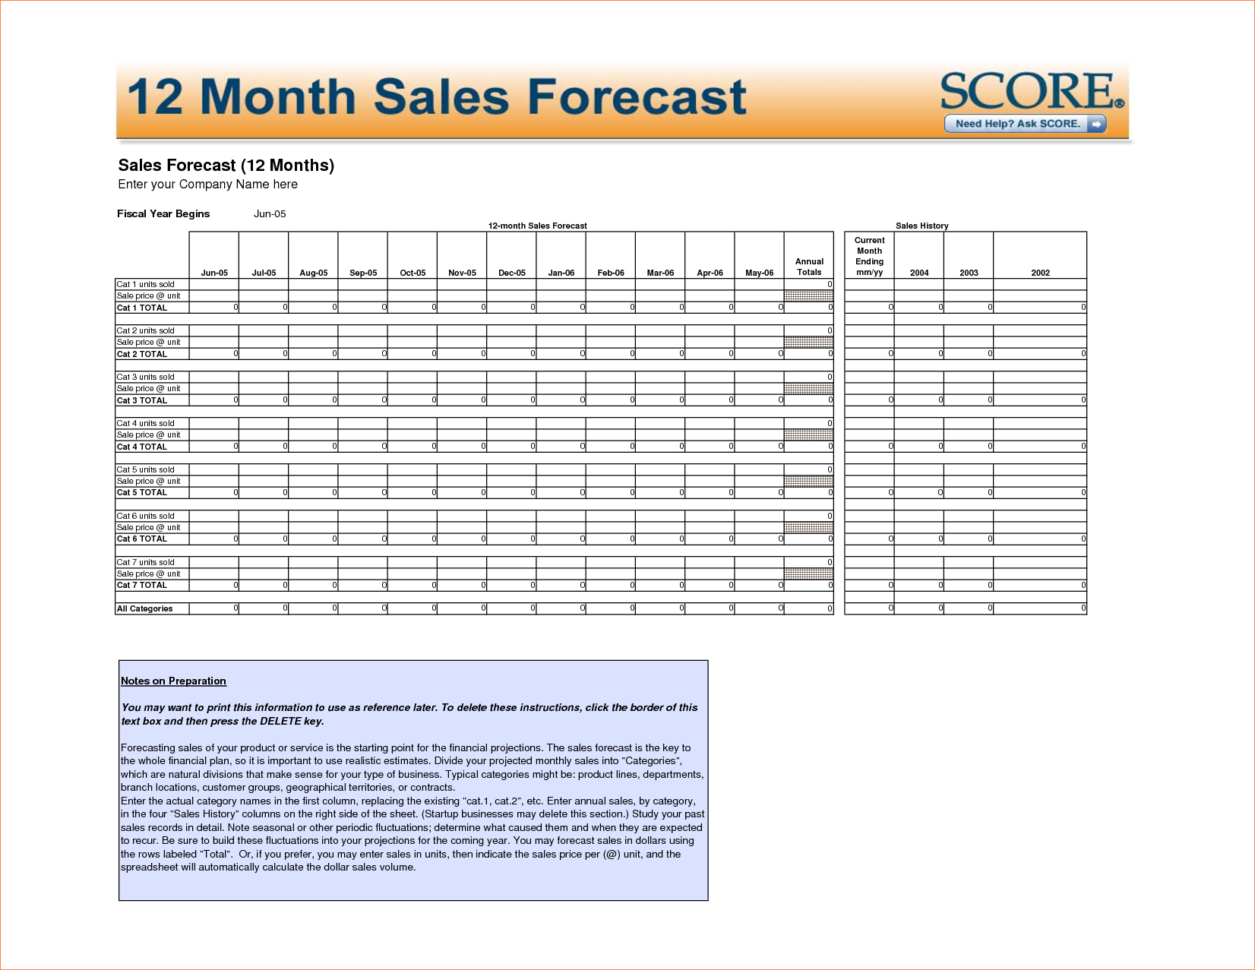 5 Year Cash Flow Template Projected Sales Forecast Example Sales Forecast Example 12 Month Financial Projection Template Sales Forecast Sheet Template 12 Month Sales Forecast Example Sales Forecast Model  Sales Forecast Template Sales Forecast Spreadsheet Template Spreadsheet Templates for Busines